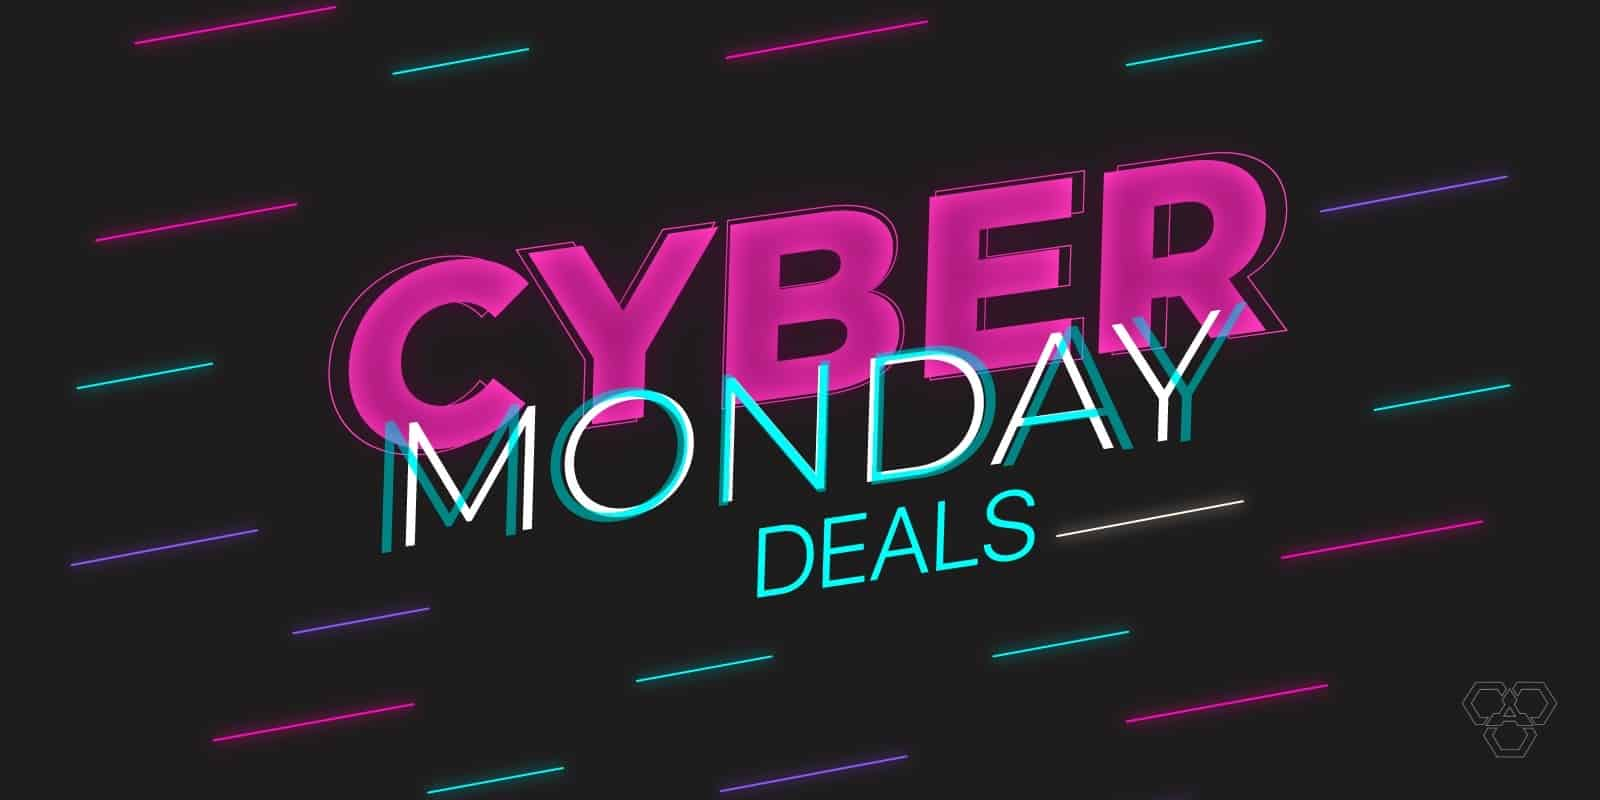 How to get the best 2020 Cyber Monday Deals on the Internet?